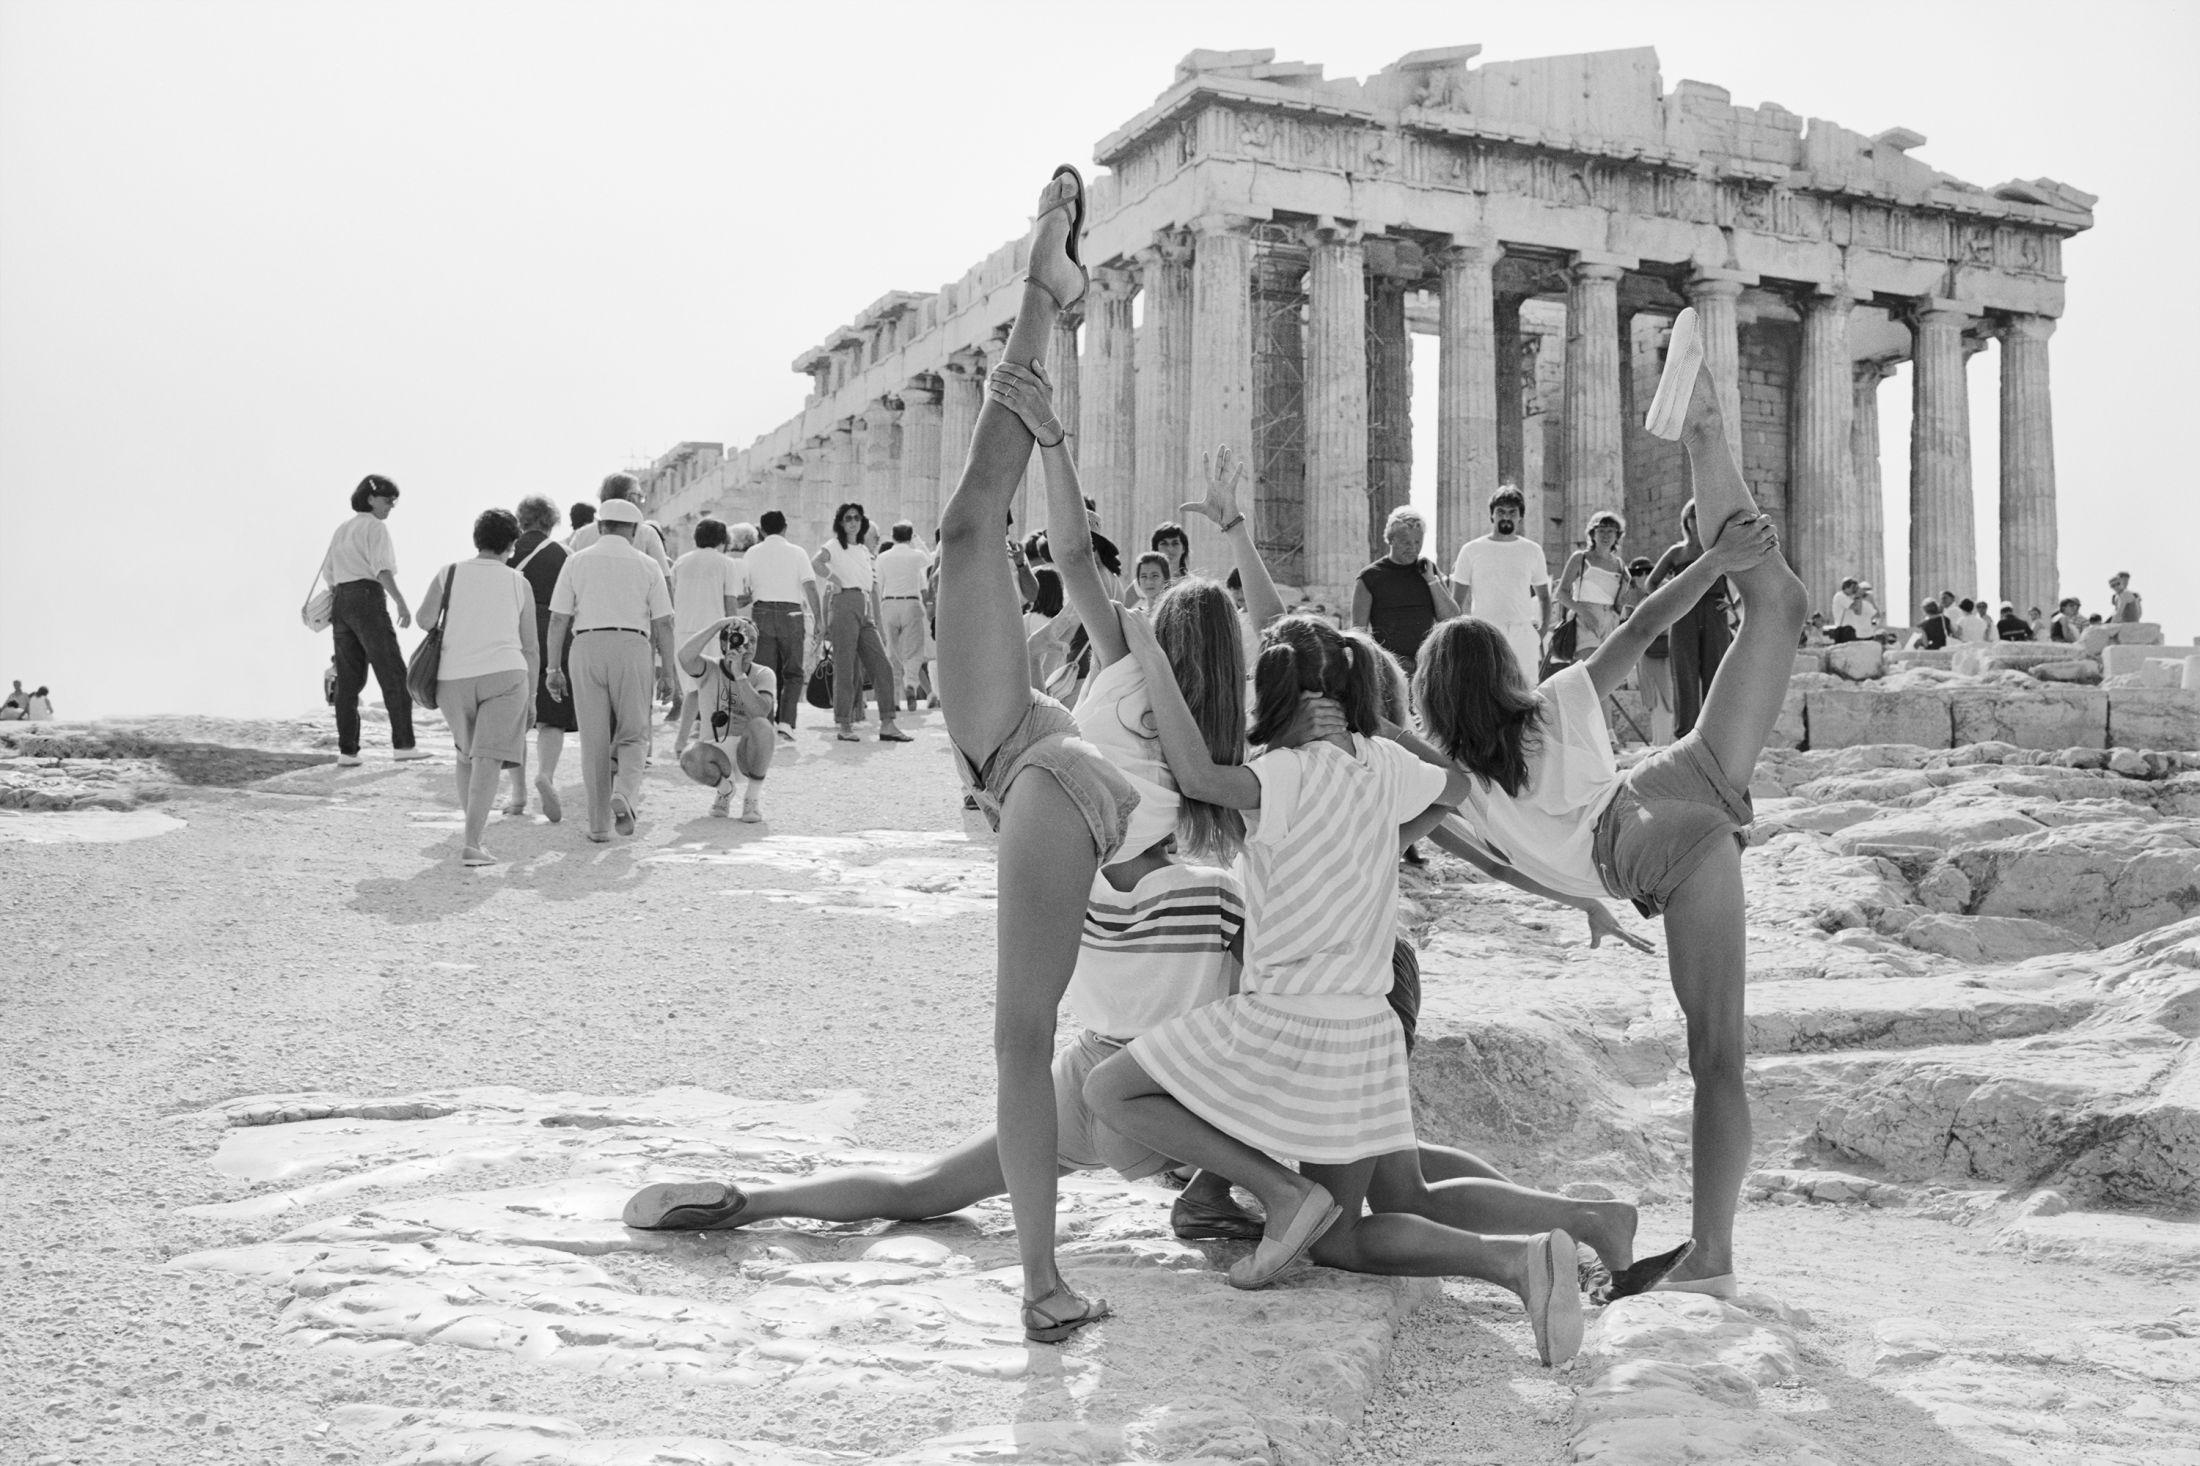 https://xage.ru/media/posts/2019/11/25/on-acropolis-photographs-of-summer-tourists_oPPPQG4.jpg